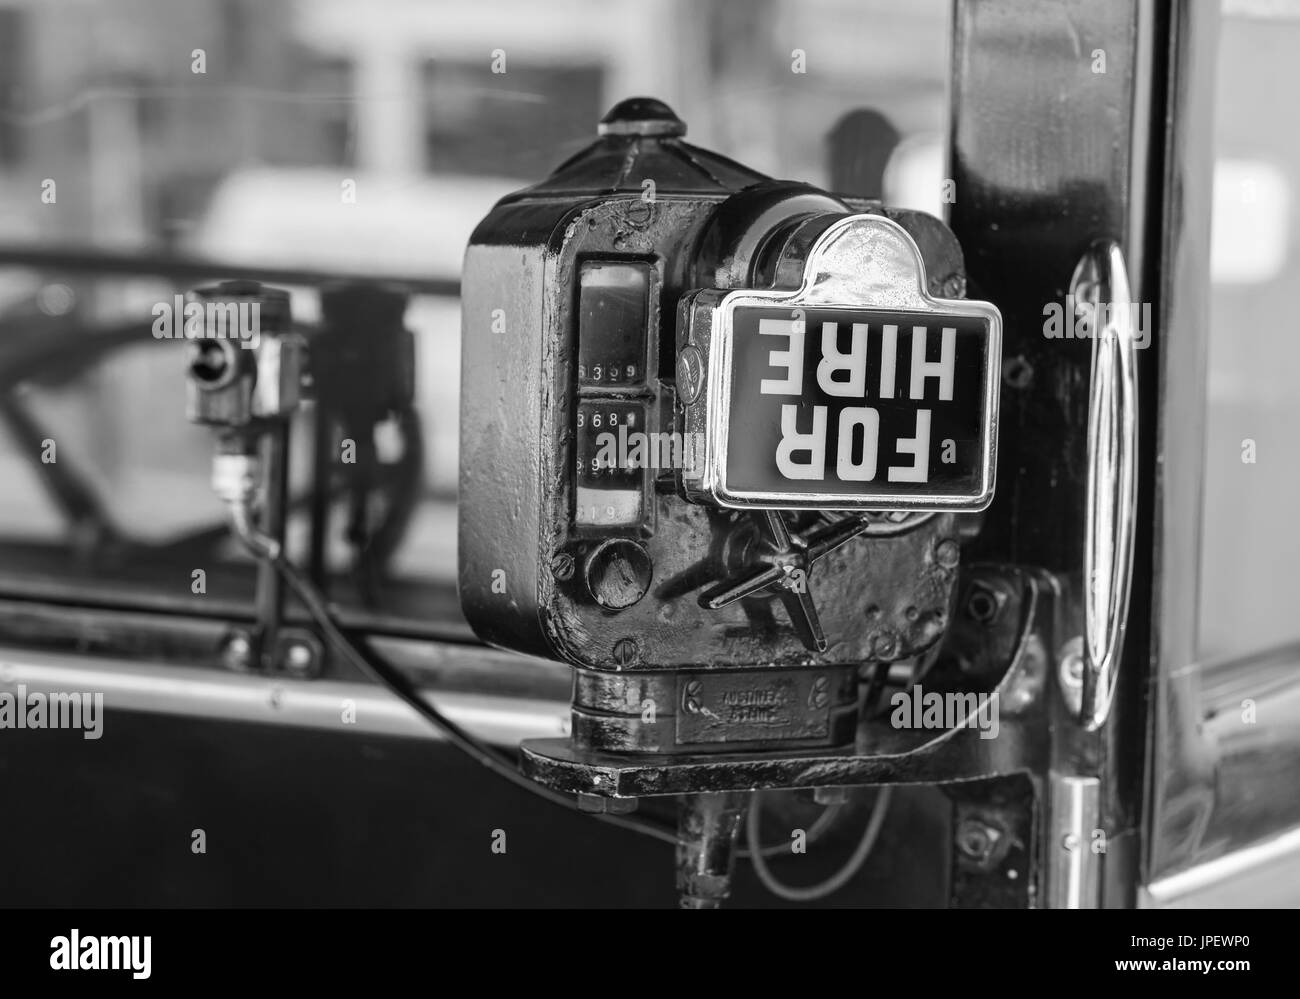 argo-taximeter-for-hire-sign-from-the-1930s-fitted-to-a-vintage-london-JPEWP0.jpg